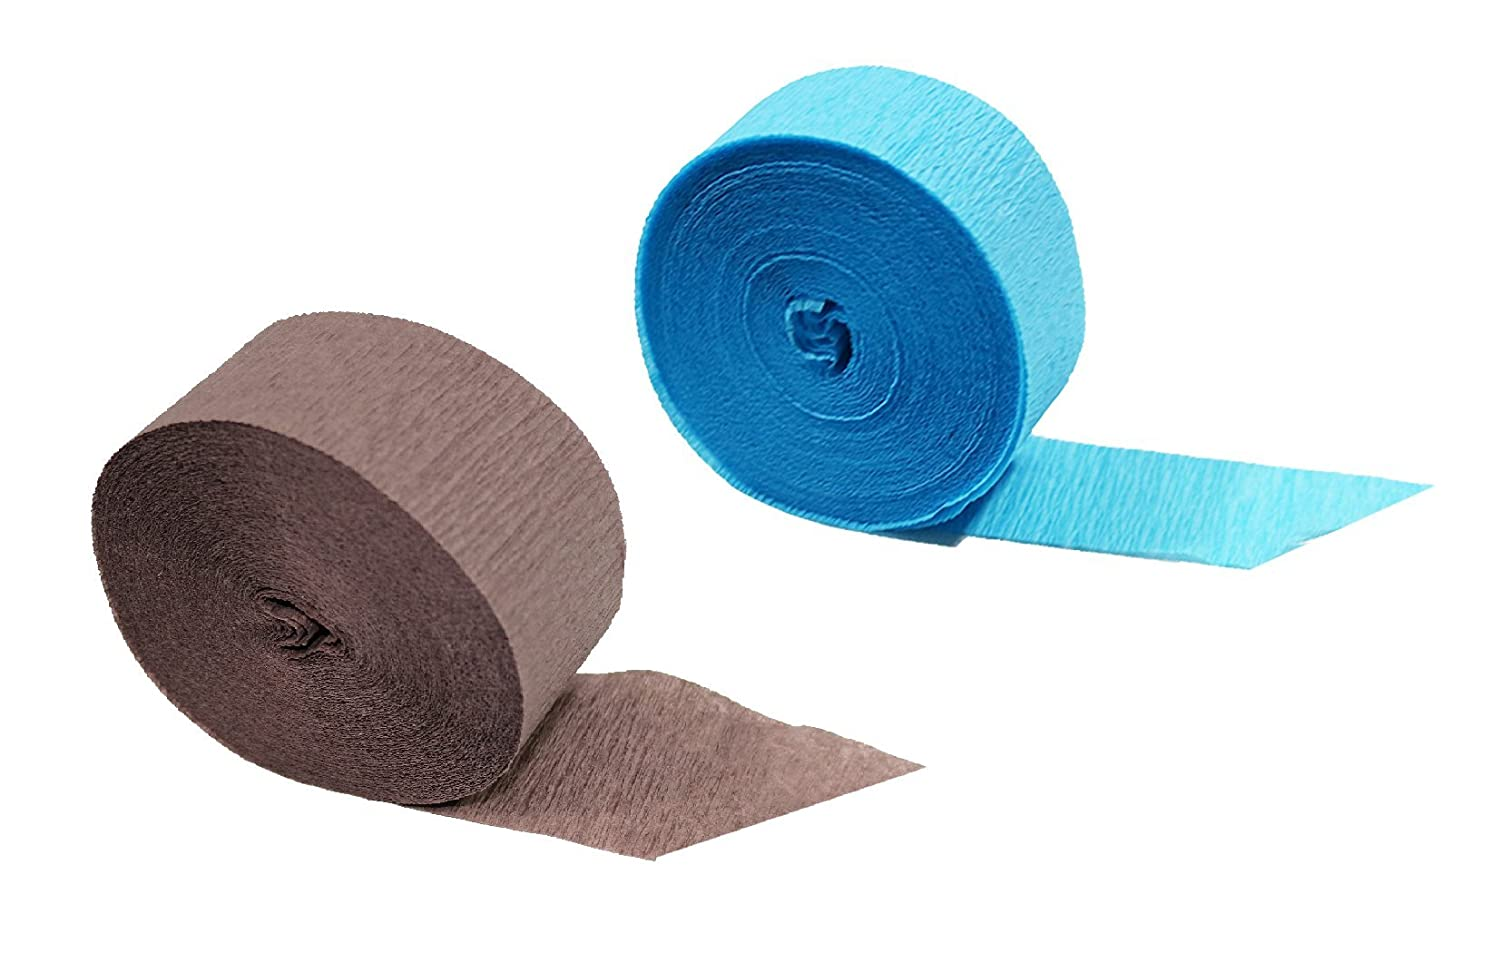 Made in USA Special Edition Crepe Paper Streamer Party Rolls 145 FEET Total Darkwood Brown, 2 Rolls